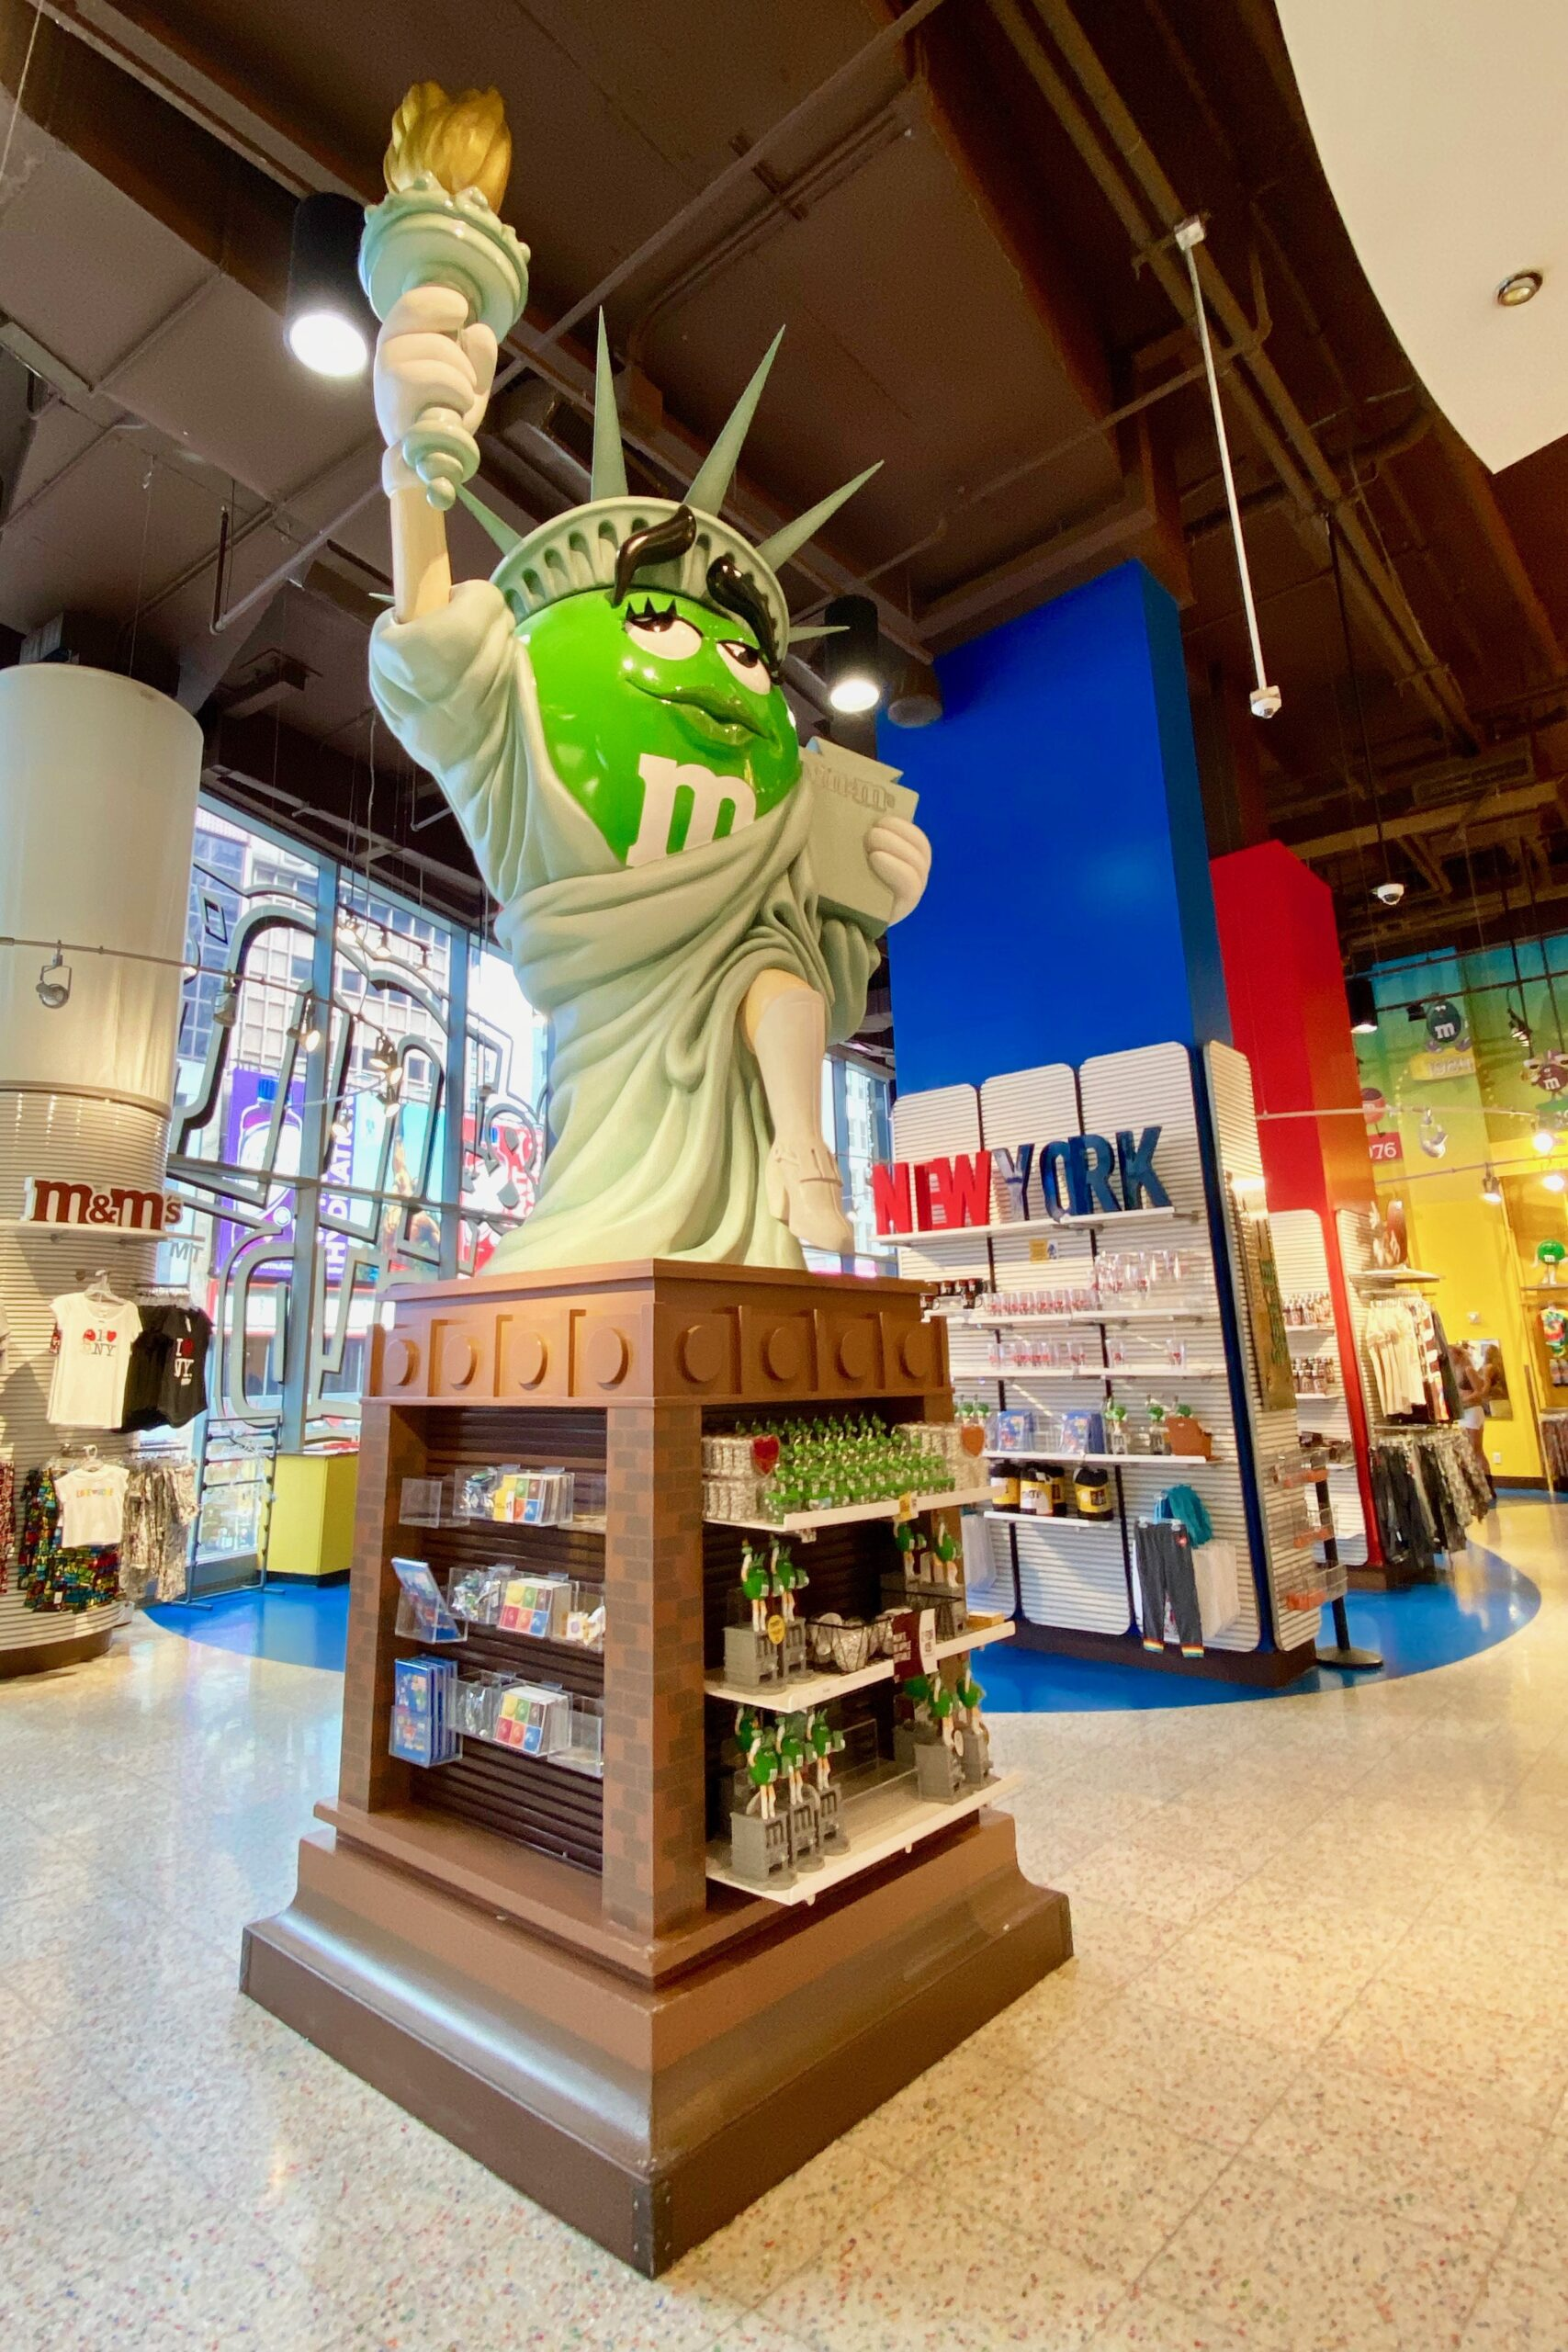 M&M dressed as Statue of Liberty at M&M World in Times Square, one of the fun things to do with kids